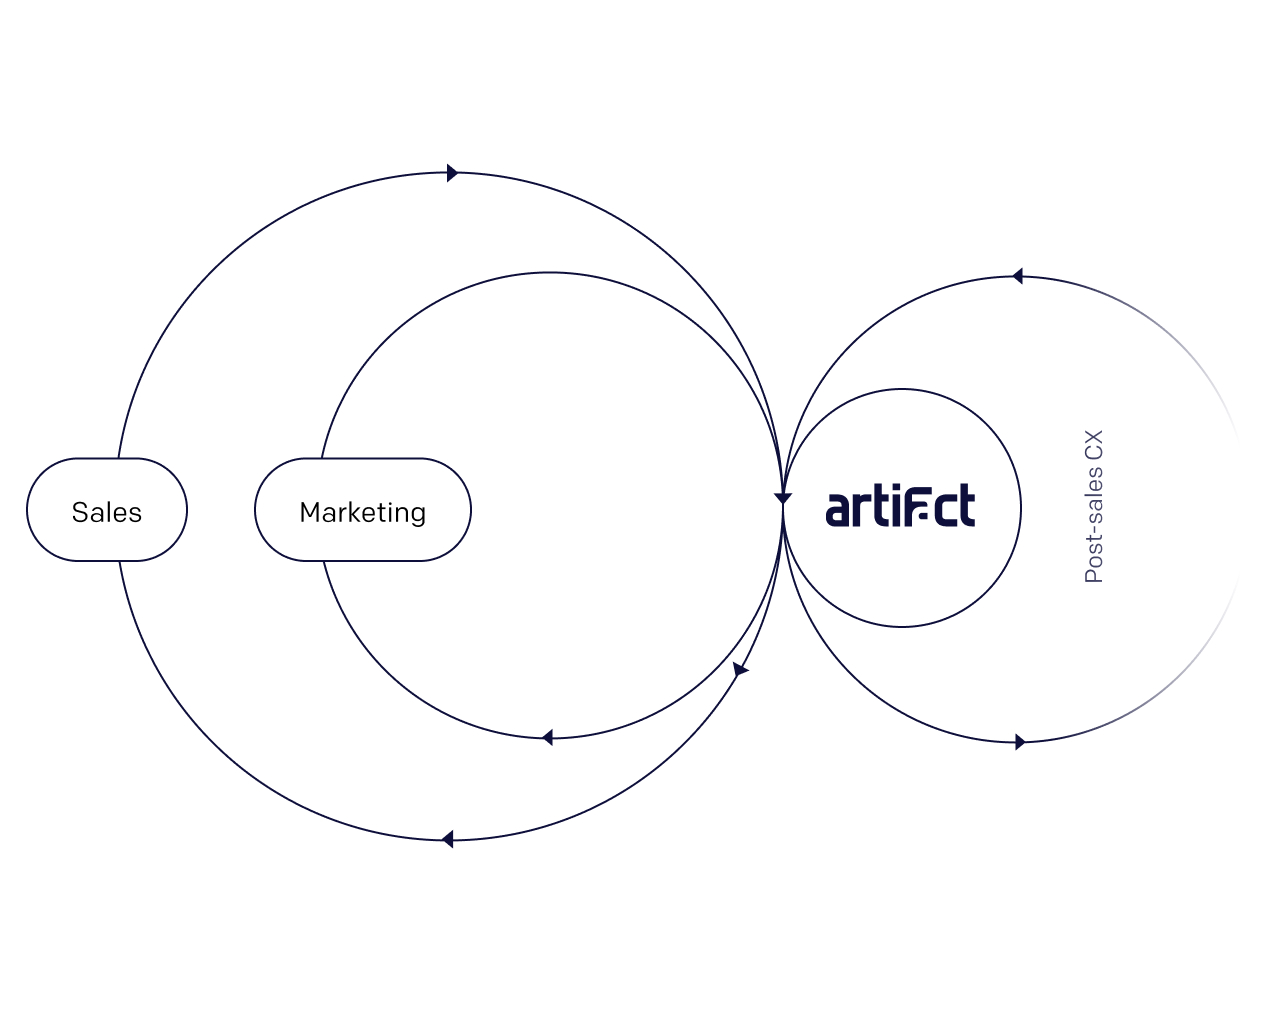 An image depicting how Artifact can enable go-to-market teams leverage customer experience insights to make better sales and marketing decisions.